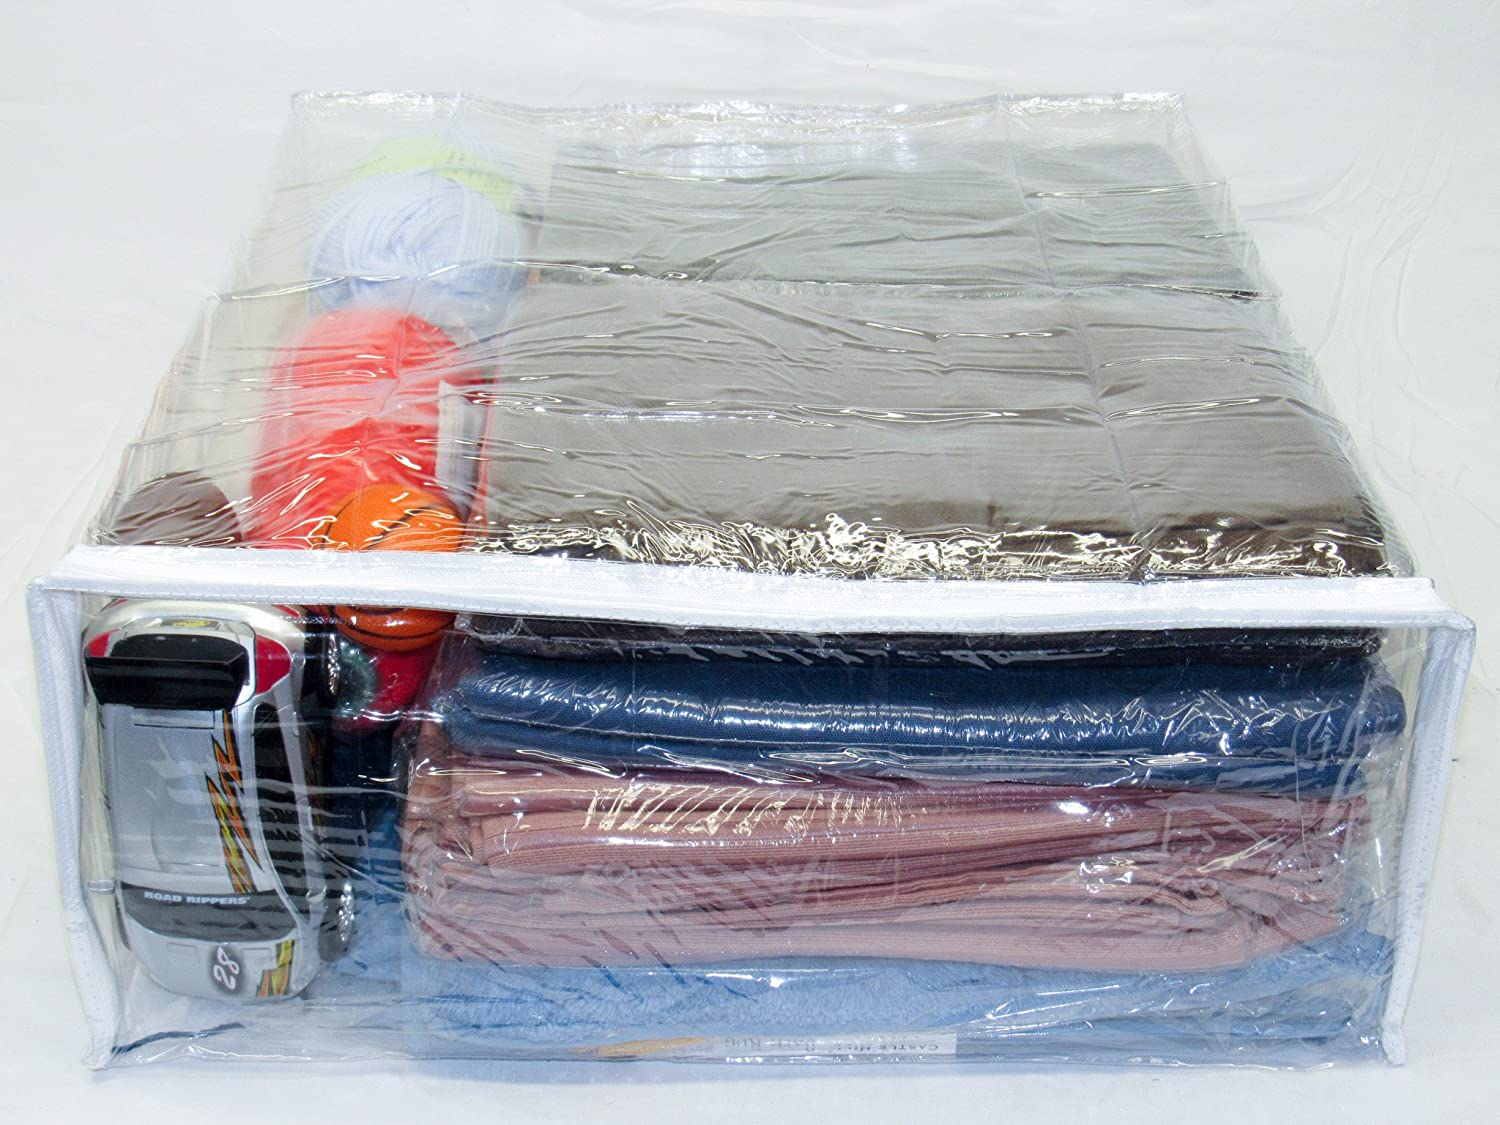 15.9 Gallon Bedding Sets 5-Pack Heavy Duty Vinyl Zippered Storage Bags Comforters Clear 20 x 23 x 8 Oreh Homewares X-Large Blankets for Sweaters